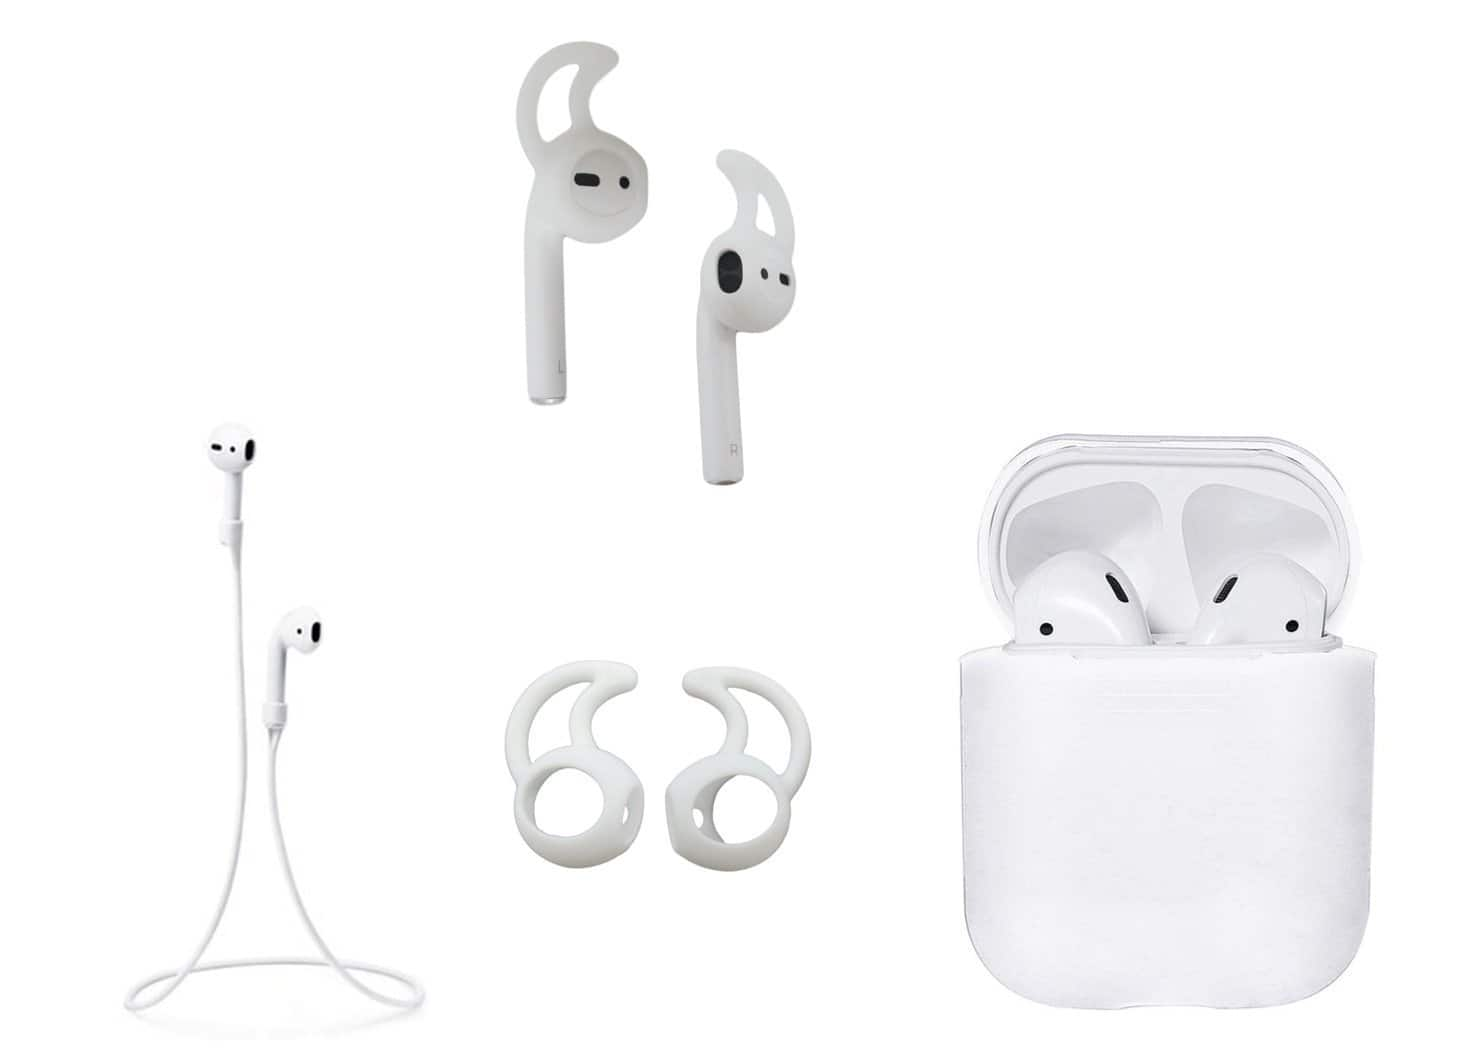 zotech accessory pack for airpods $5.05